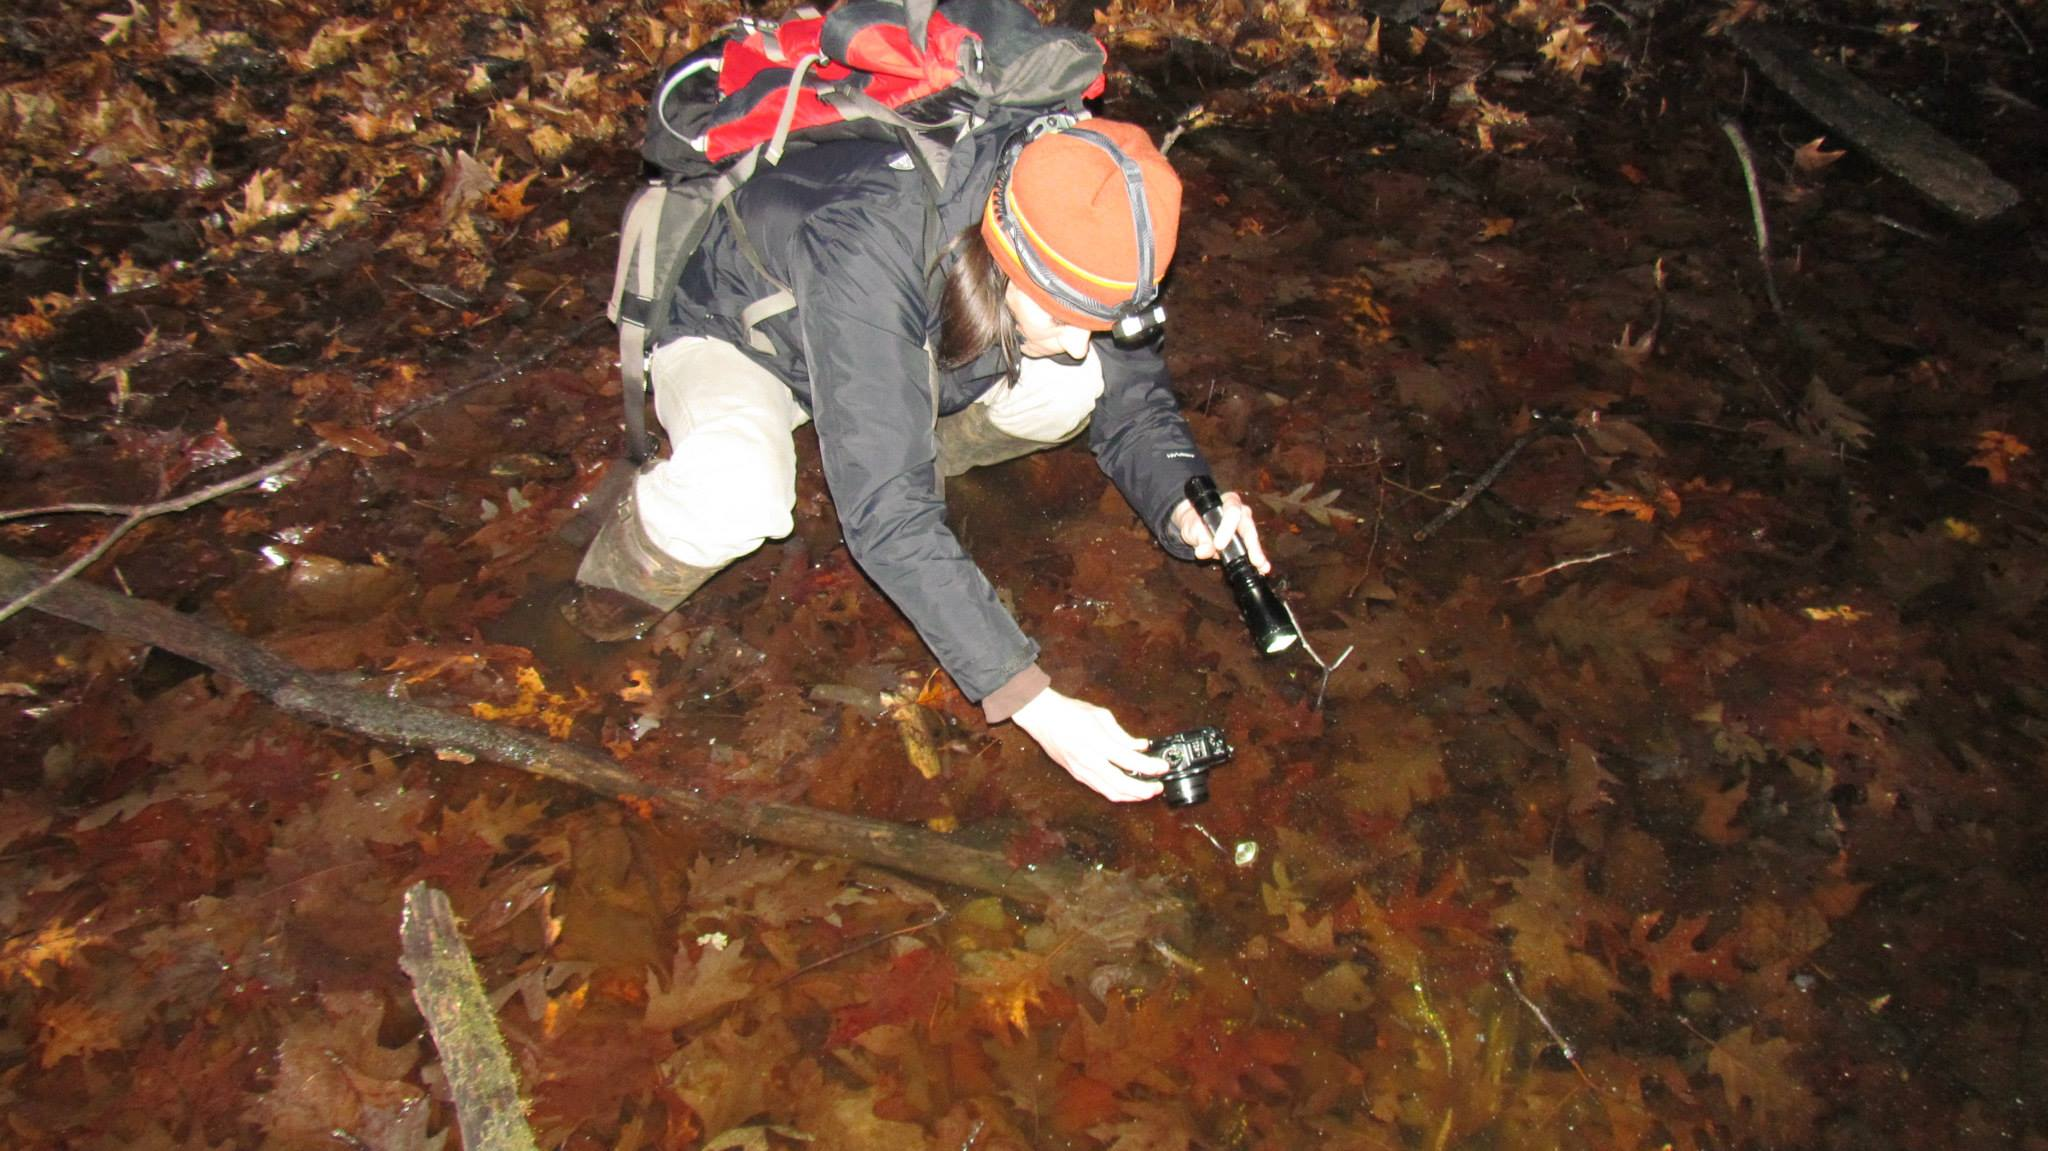 A woman squats down in a shallow pond filled with leaves. She is holding a flash light in one hand and a camera in the other. She wears a backpack and has a light attached to her head. She is looking for newts.